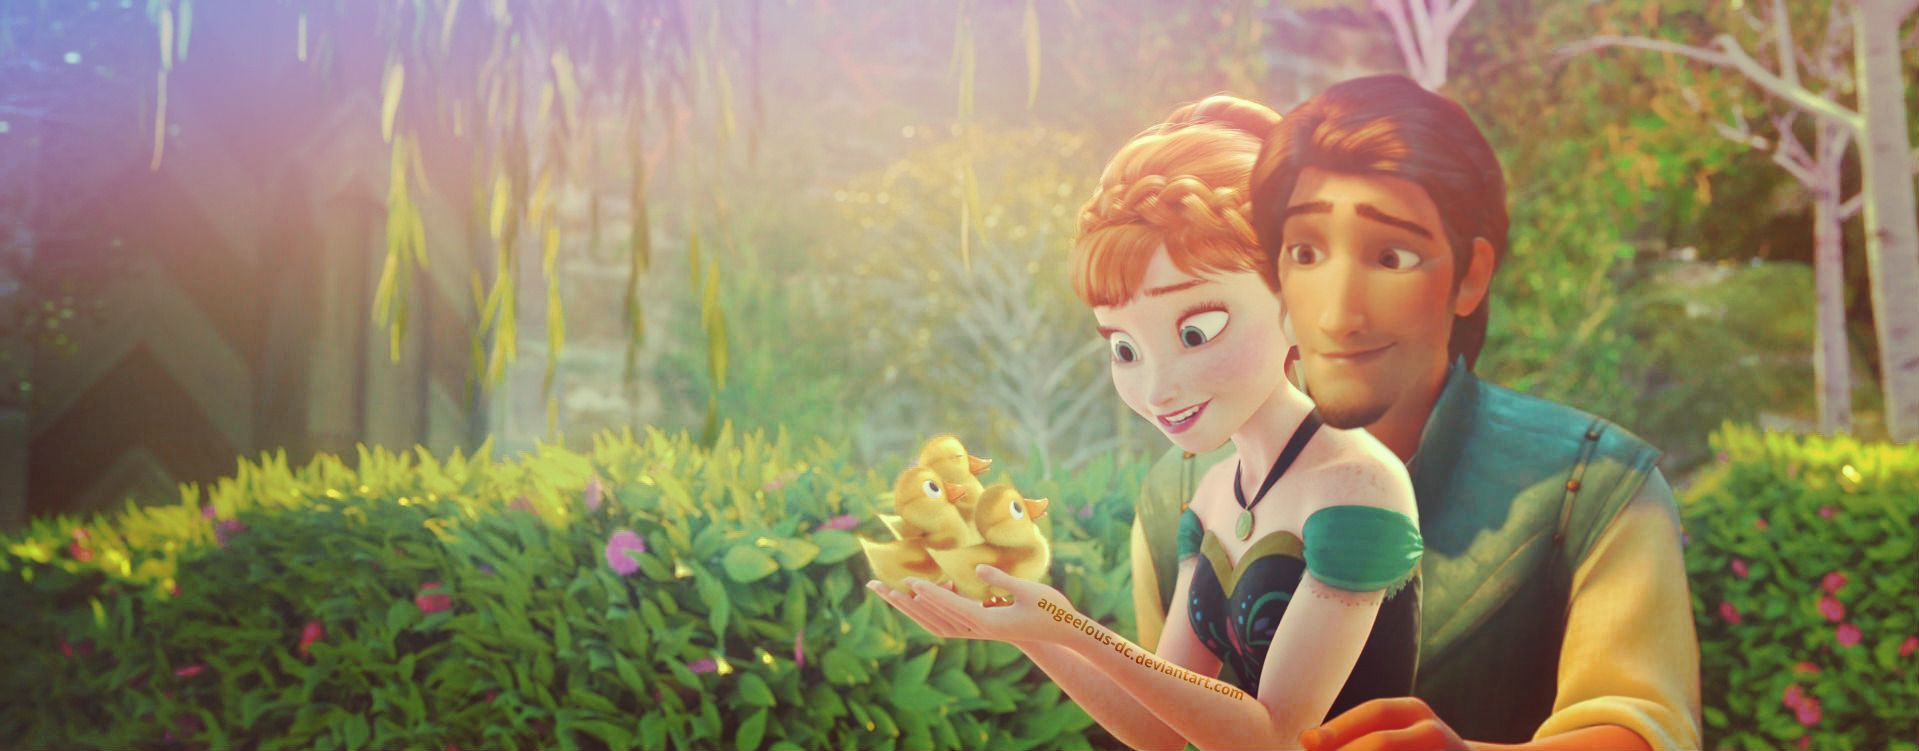 Cute Duckling Wallpaper Disney Crossover Images Flynn Rider Anna Hd Wallpaper And